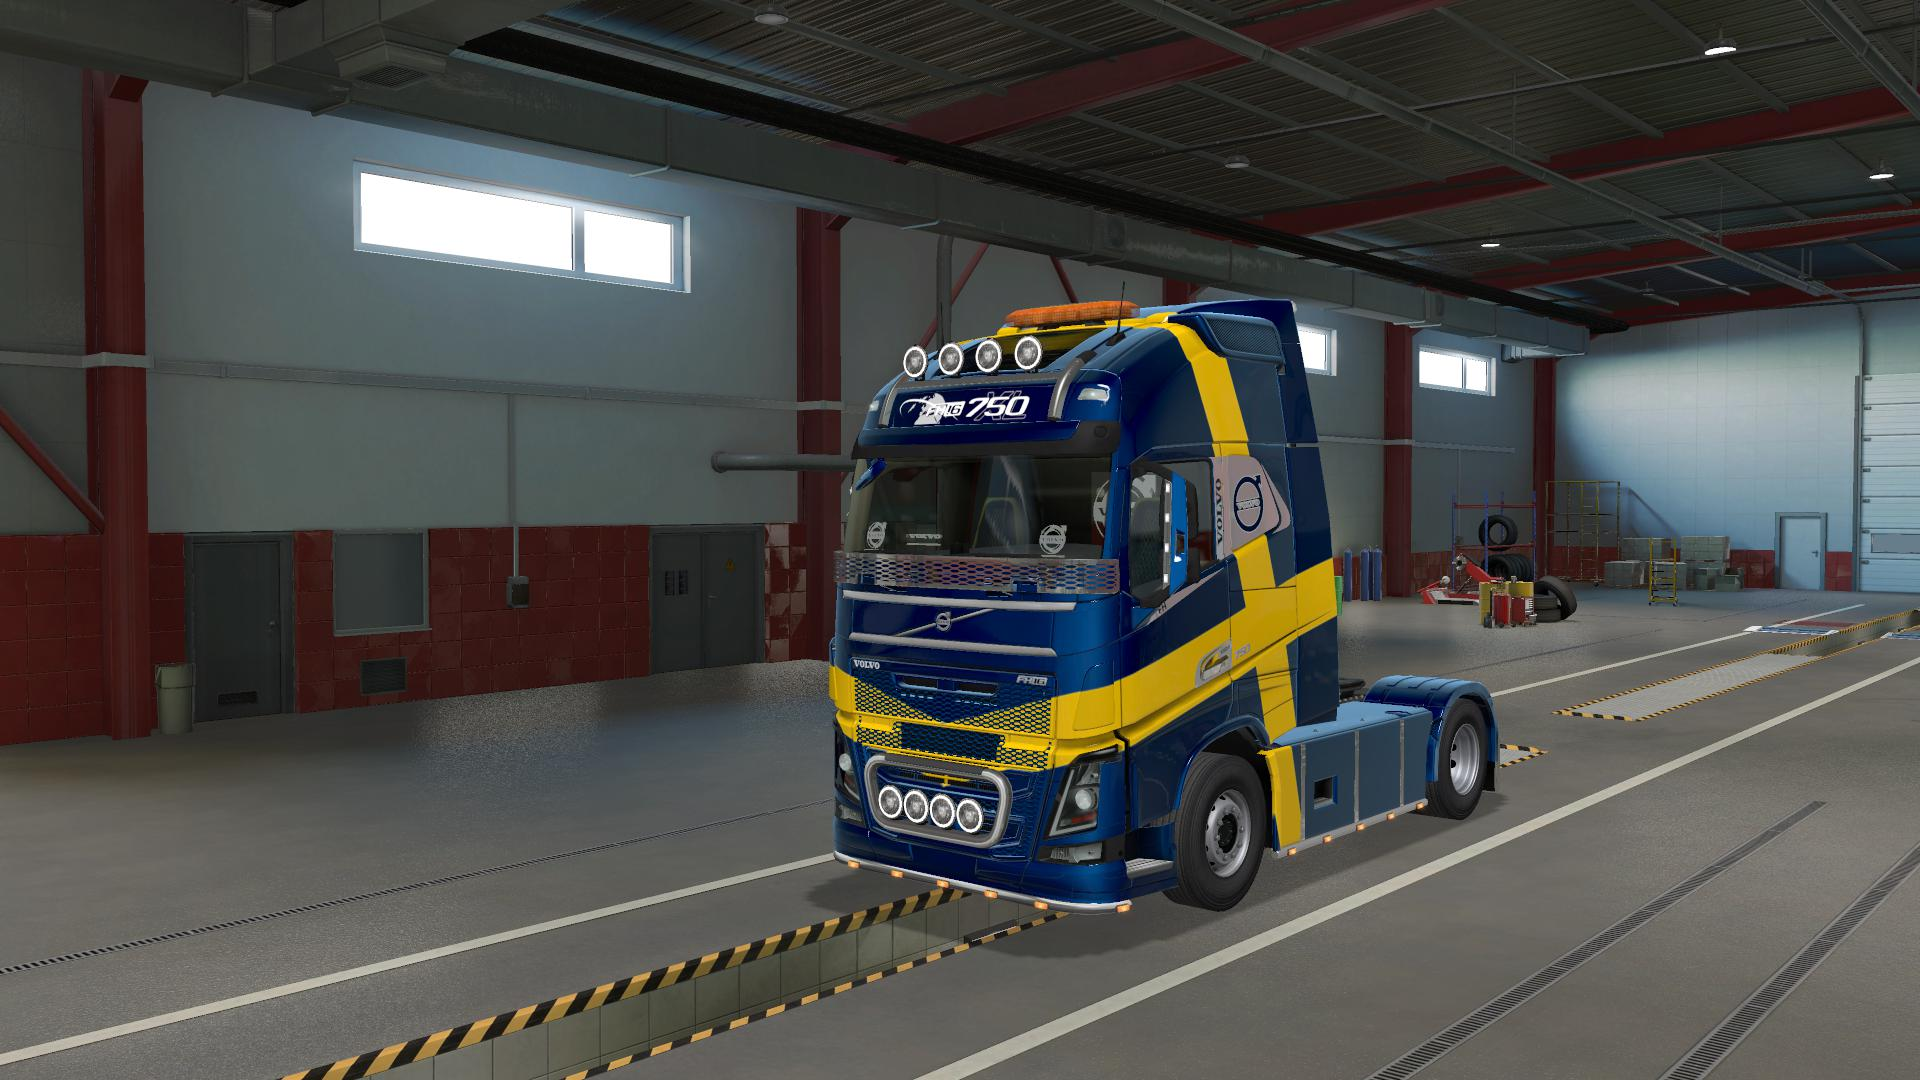 ETS2 - Rpie Volvo Fh16 2012 Truck V1.38.0.33s